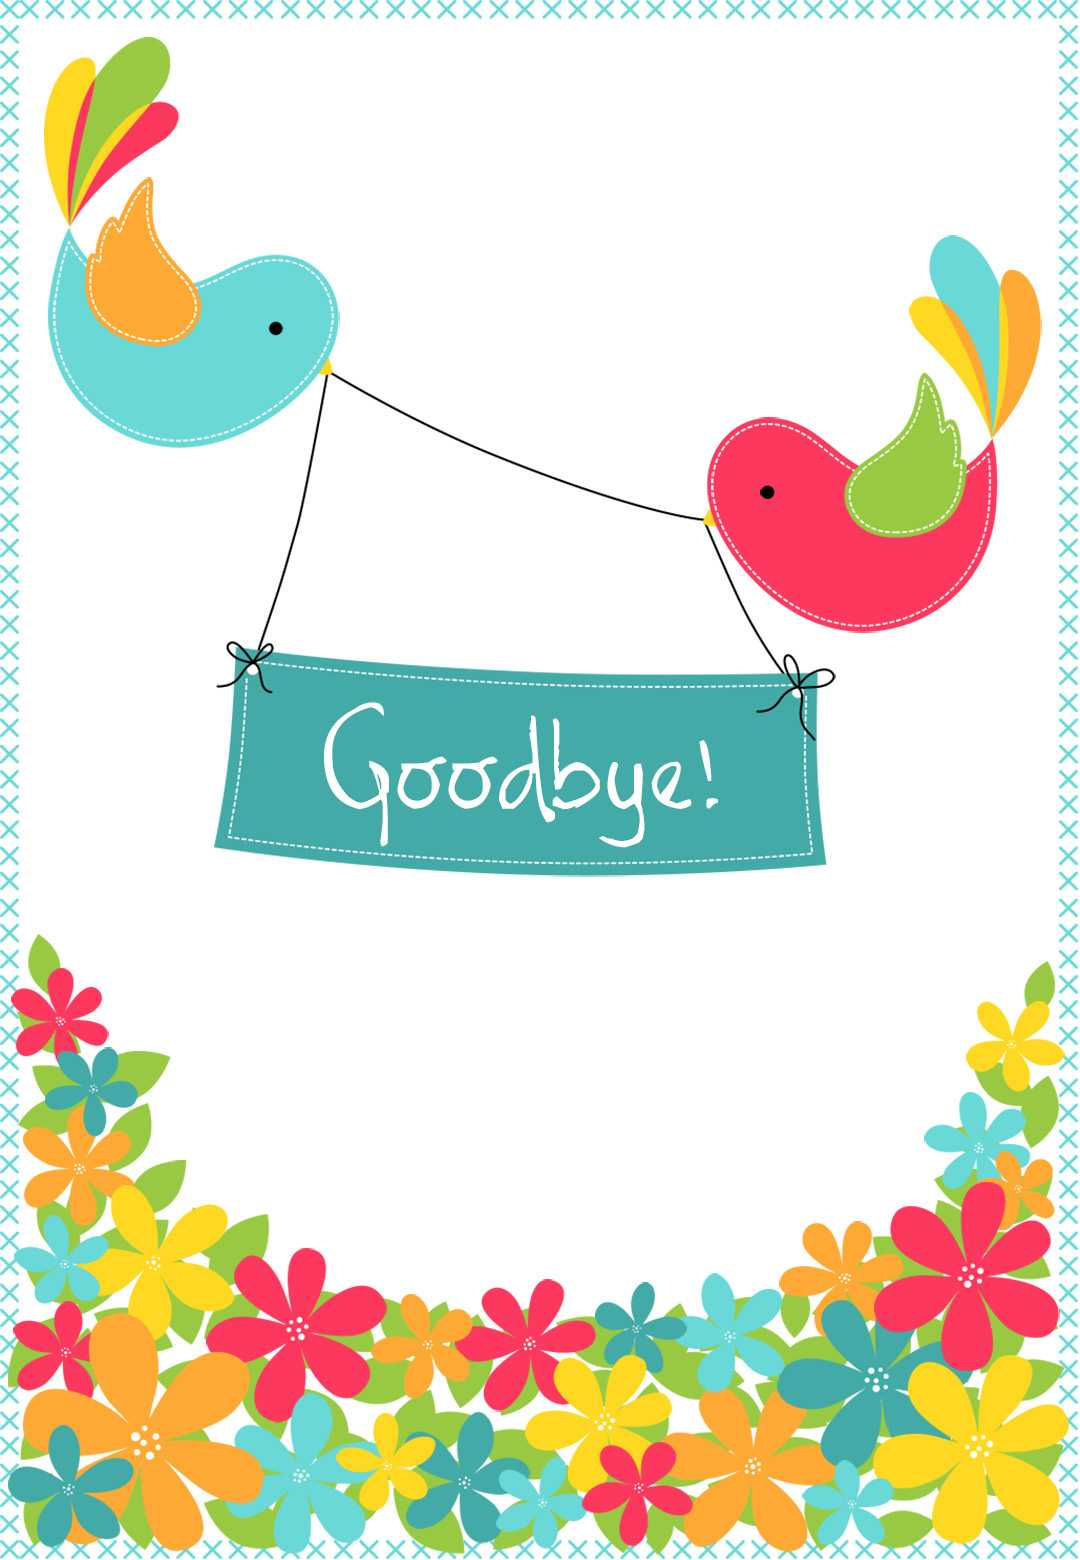 Goodbye From Your Colleagues - Good Luck Card (Free Pertaining To Goodbye Card Template